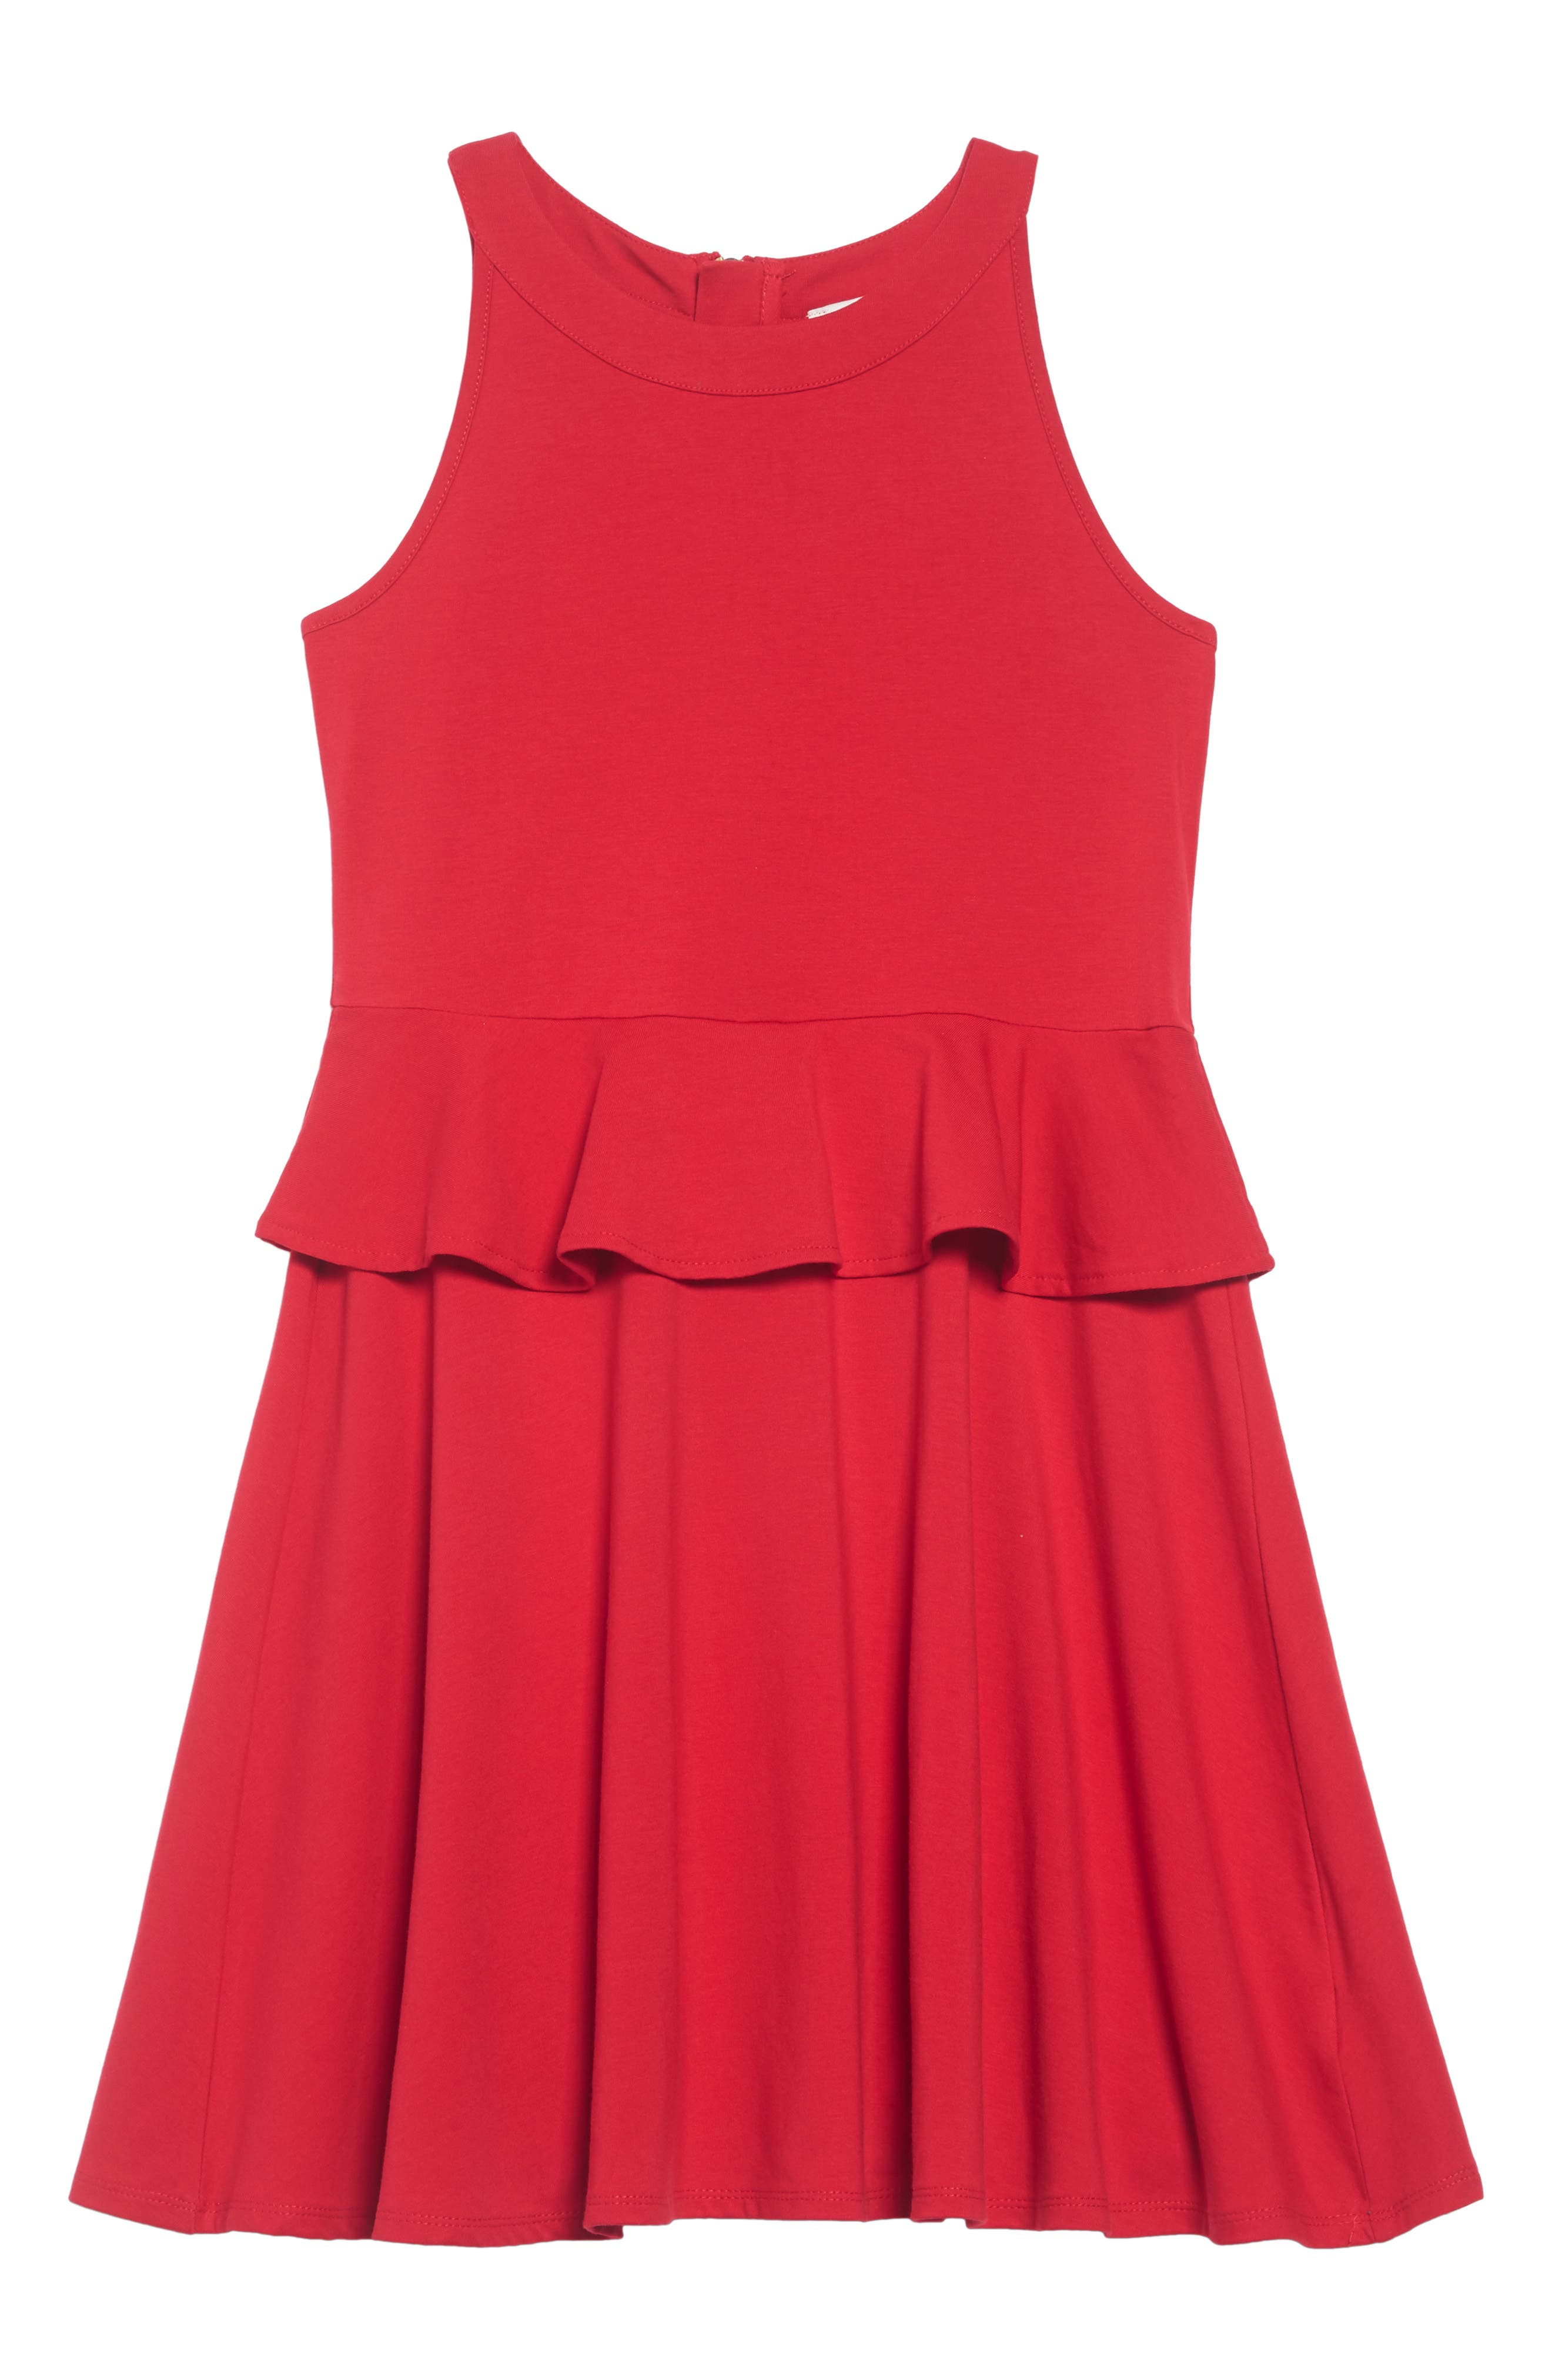 peplum dress,                             Main thumbnail 1, color,                             CHARM RED